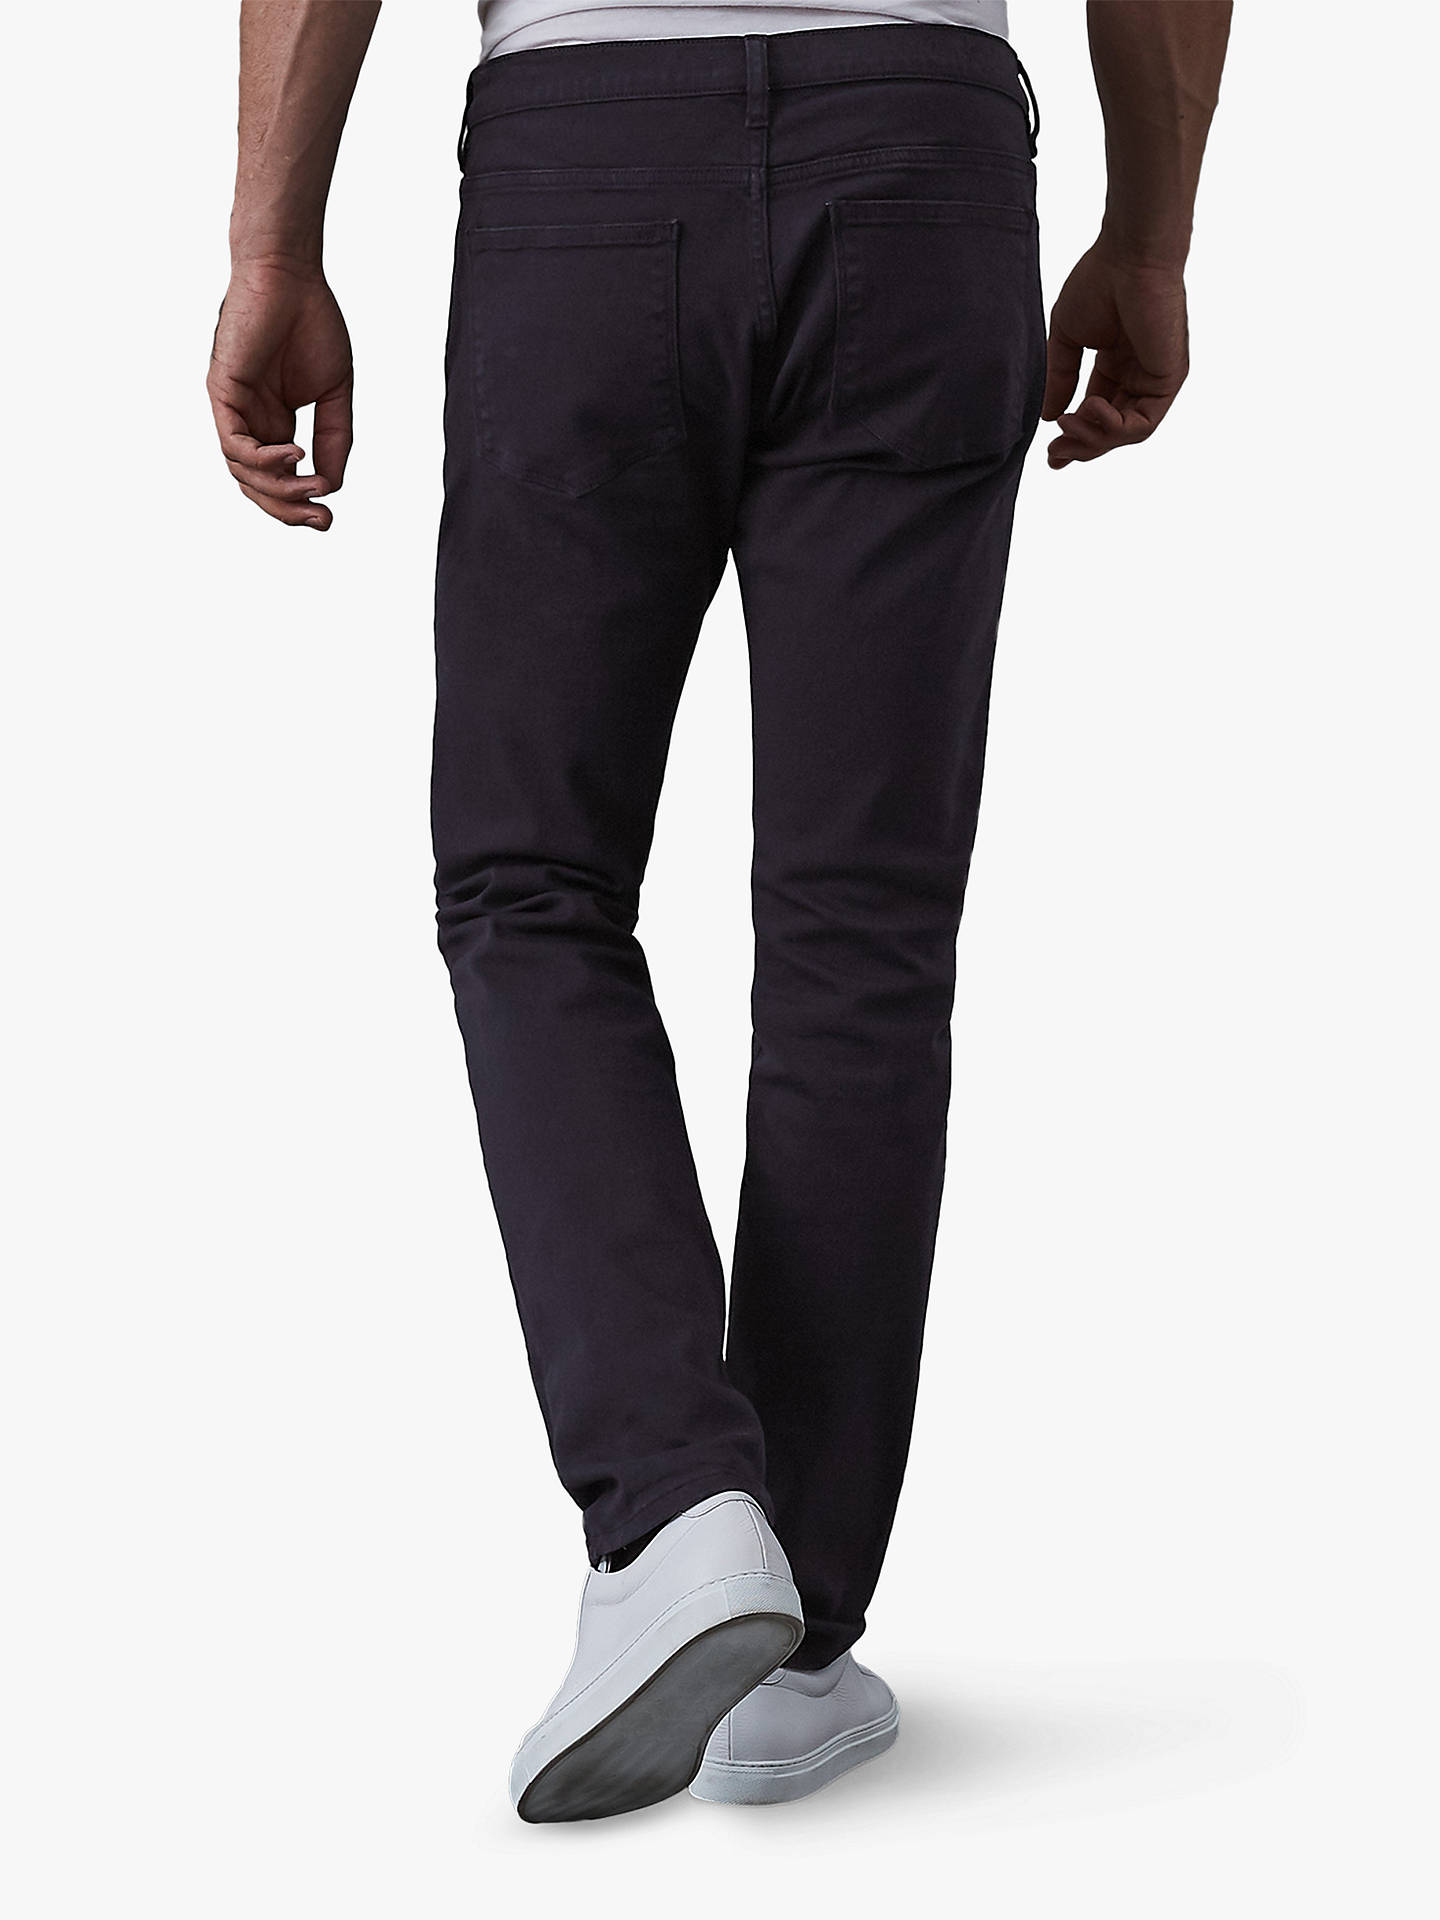 Buy Reiss Soloman Garment Dye Slim Jeans, Indigo, 30R Online at johnlewis.com